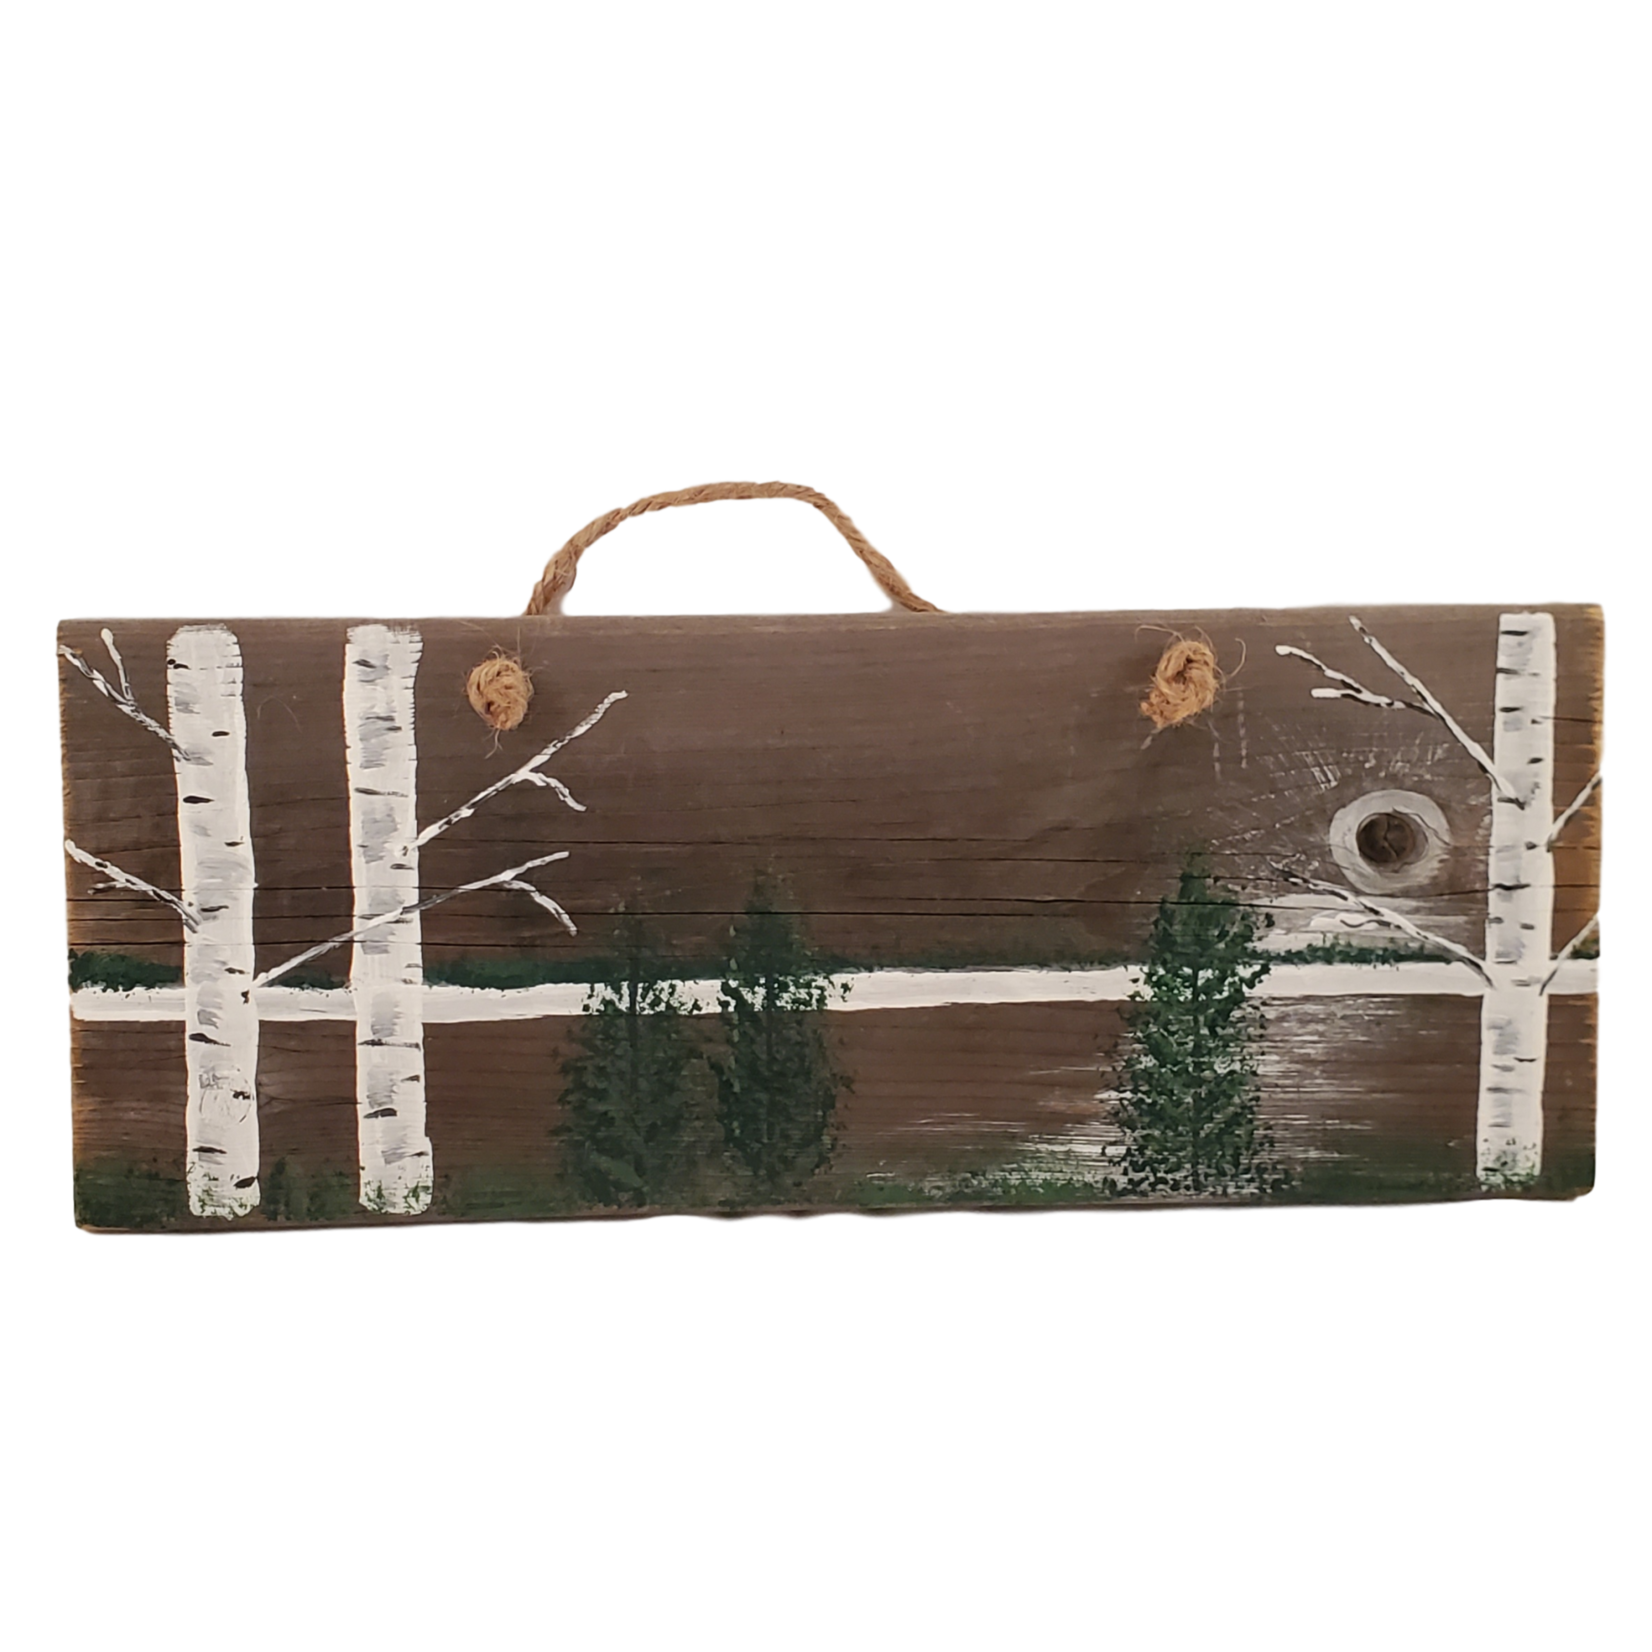 Off The Wall Gallery Hand-painted Birch Tree Sign